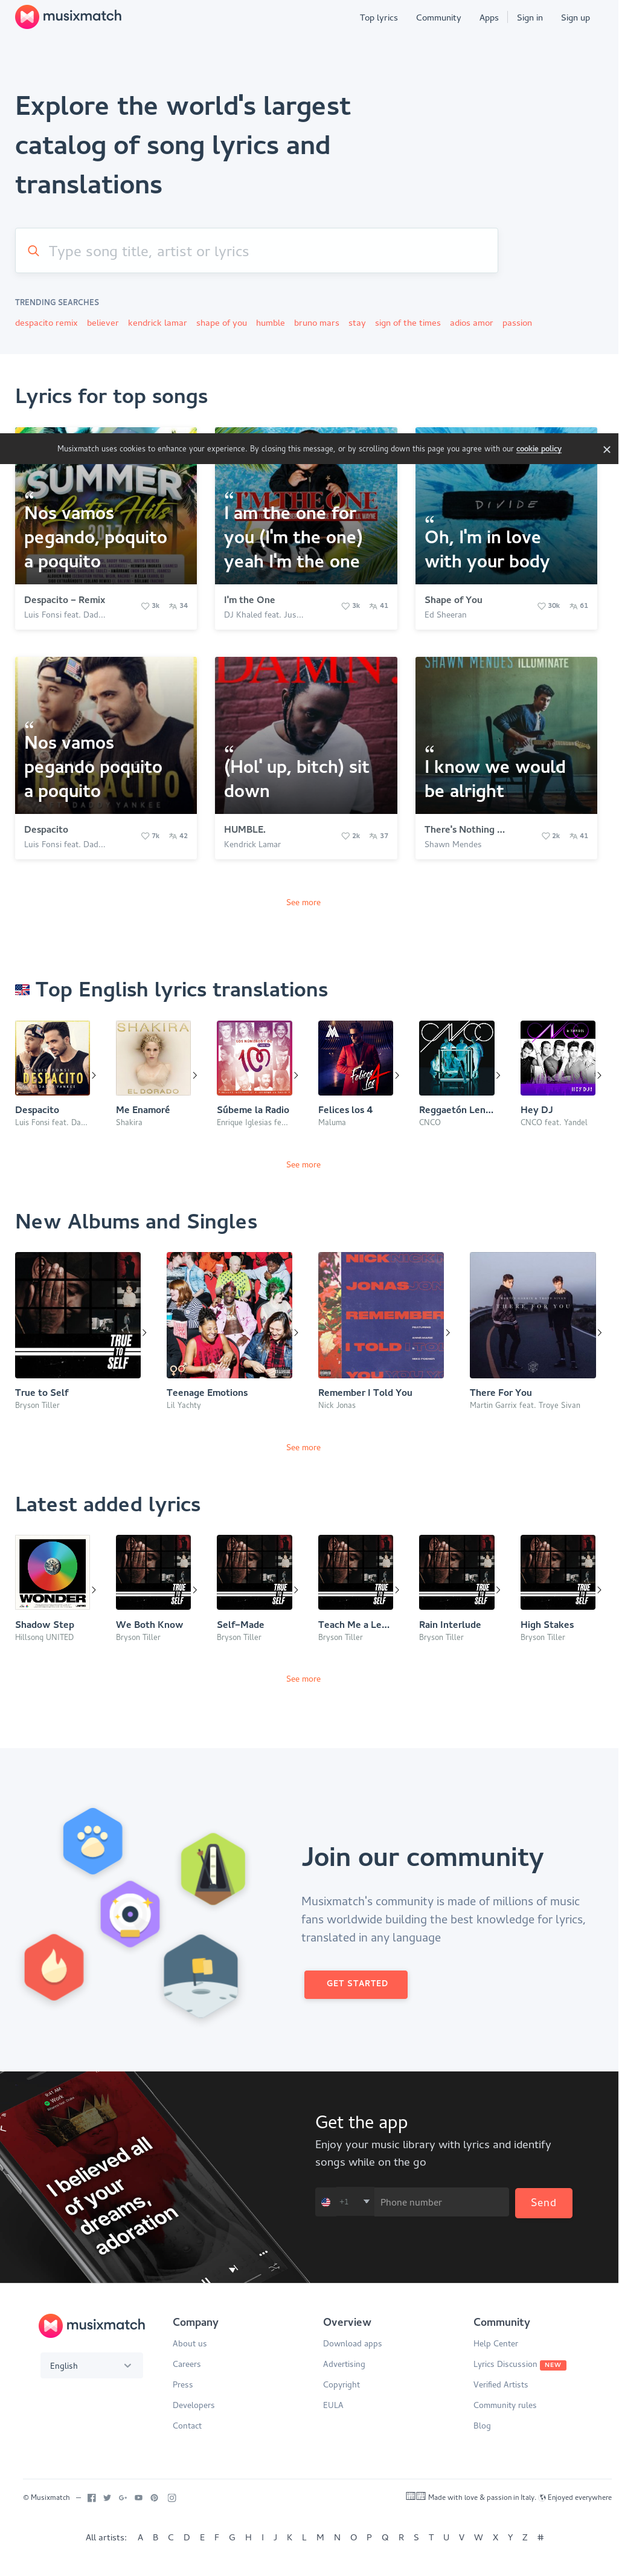 Musixmatch Competitors, Revenue and Employees - Owler